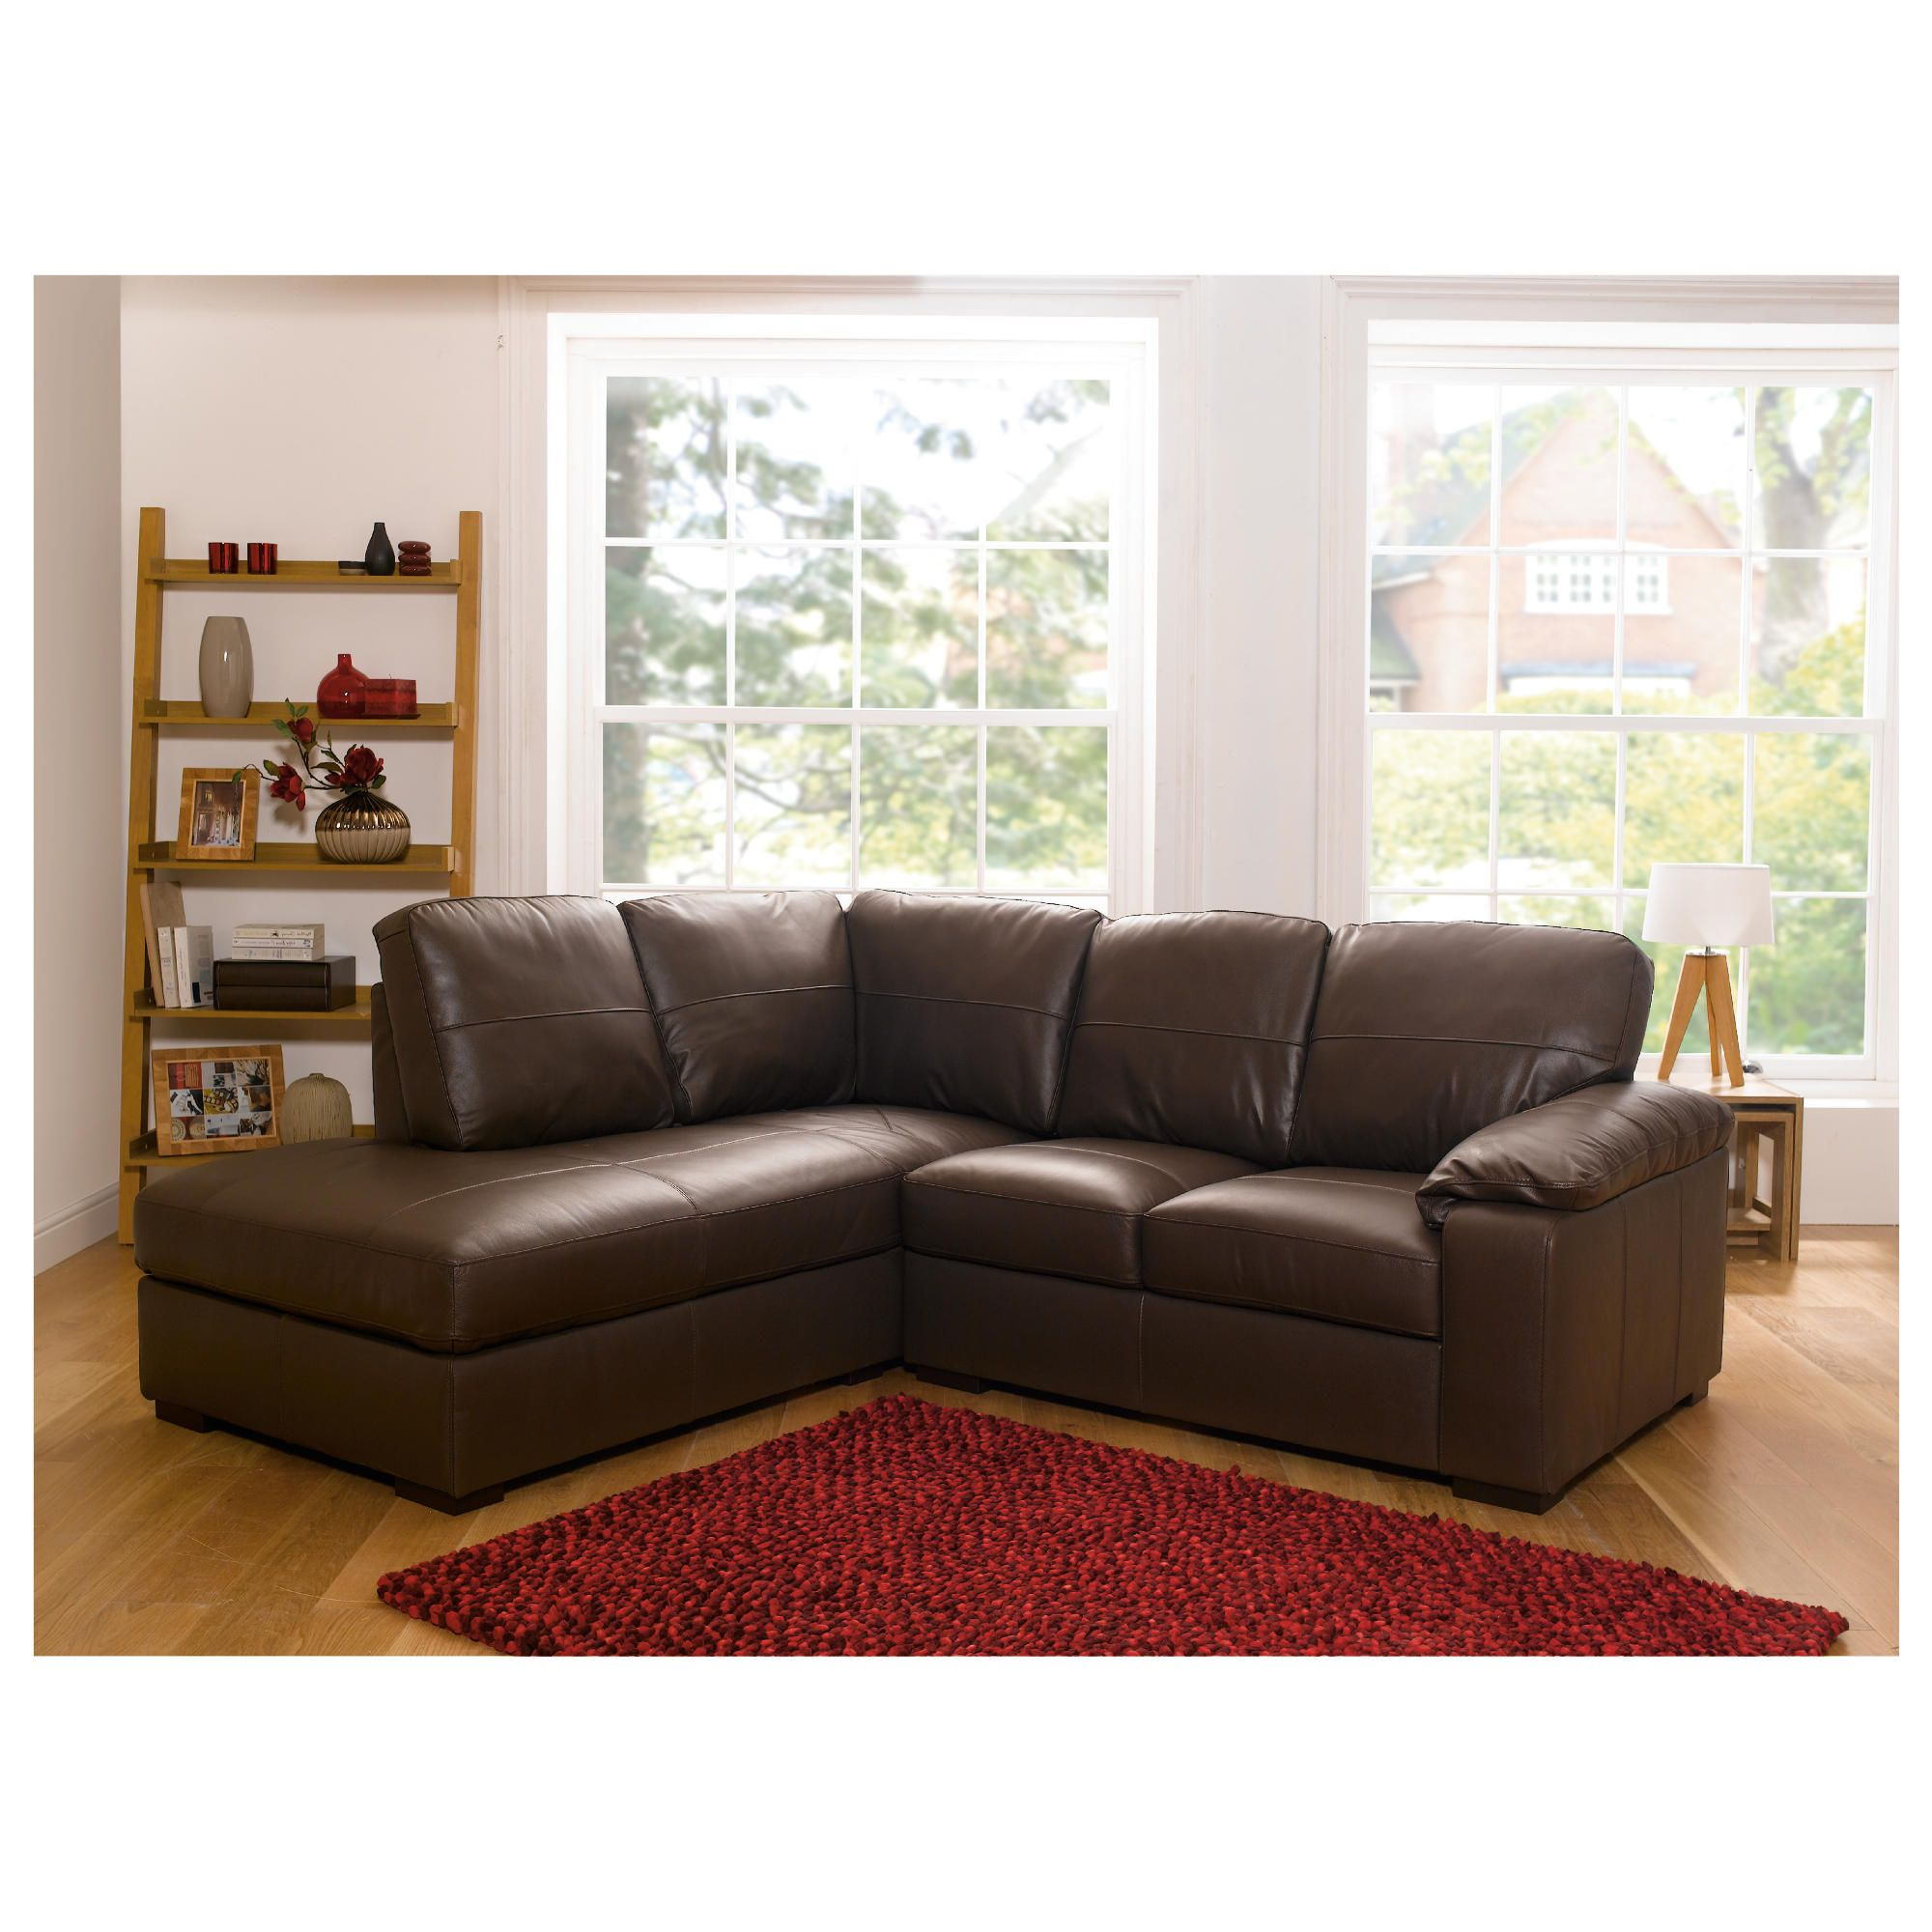 Ashmore Leather Corner Sofa, Brown Left Hand Facing at Tesco Direct